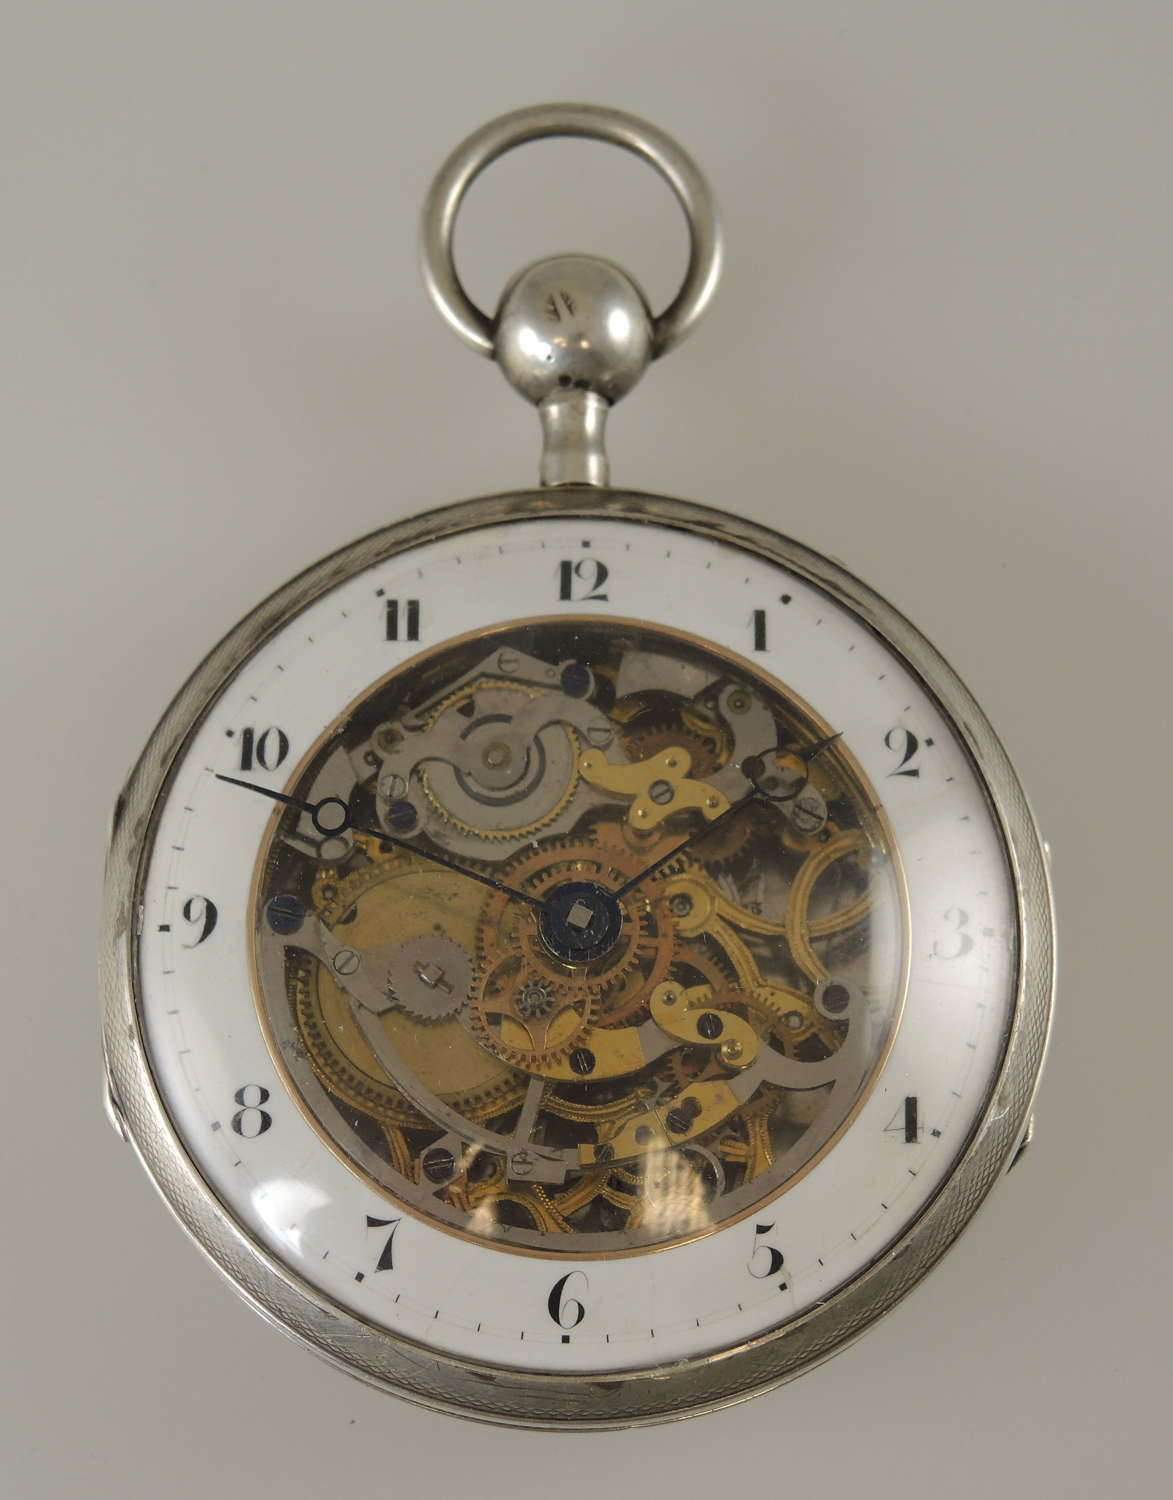 Superb Skeletonized Repeater pocket watch c1820